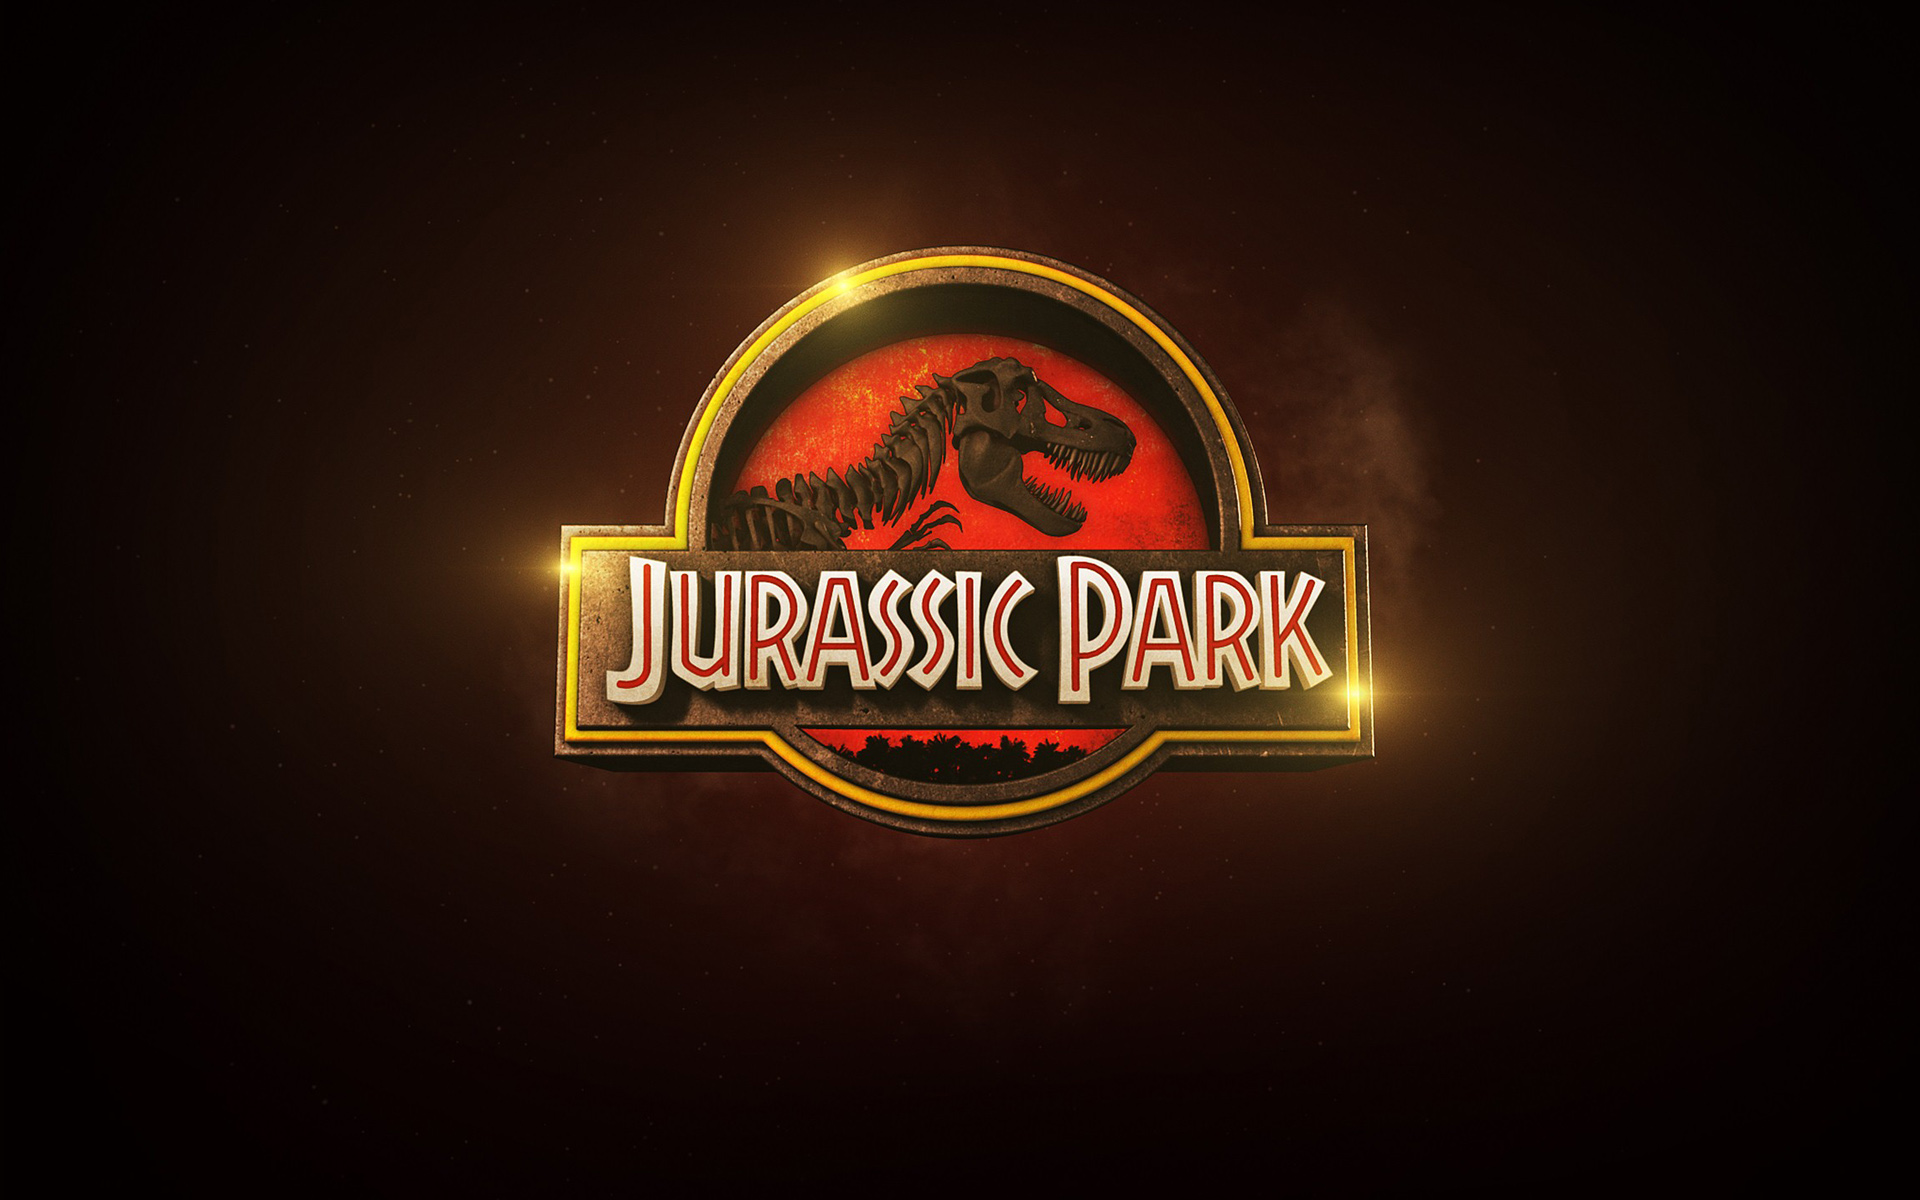 44 Jurassic Park Logo Wallpaper On Wallpapersafari Pngtree offers jurassic world logo png and vector images, as well as transparant background jurassic world logo clipart images and psd files. 44 jurassic park logo wallpaper on